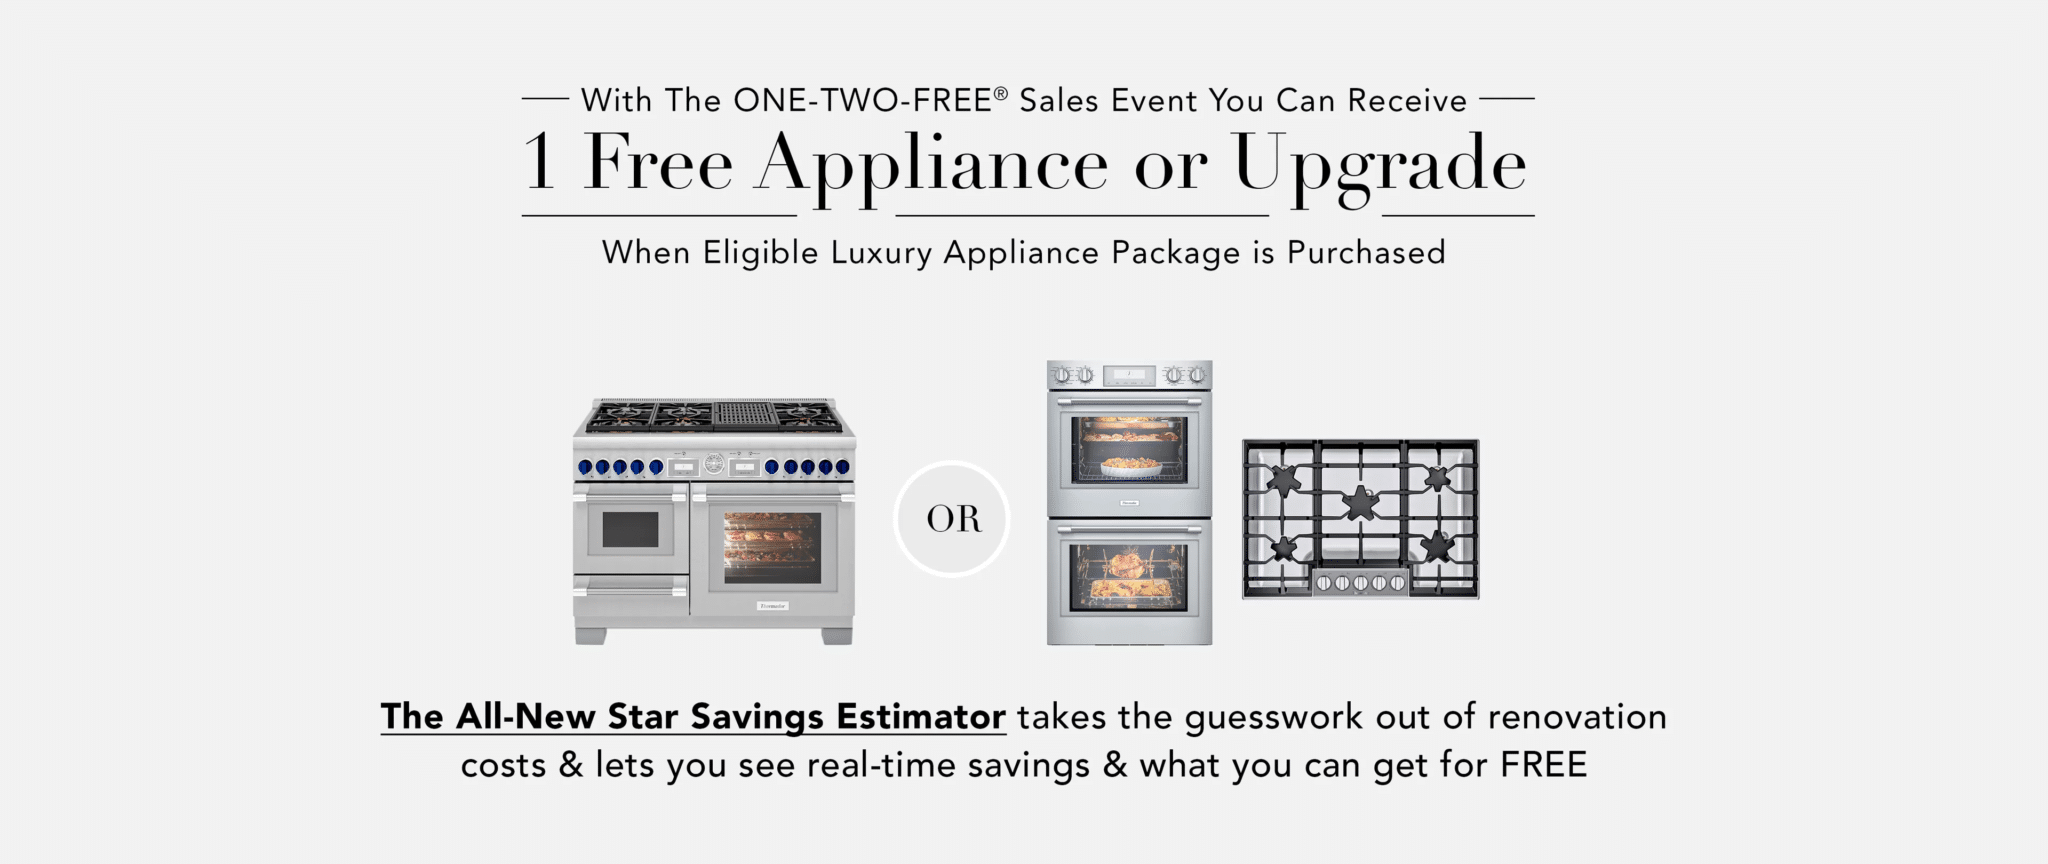 16269717_thermador-kitchen-appliance-bundle-1-free-appliance-or-upgrade_4000x1688